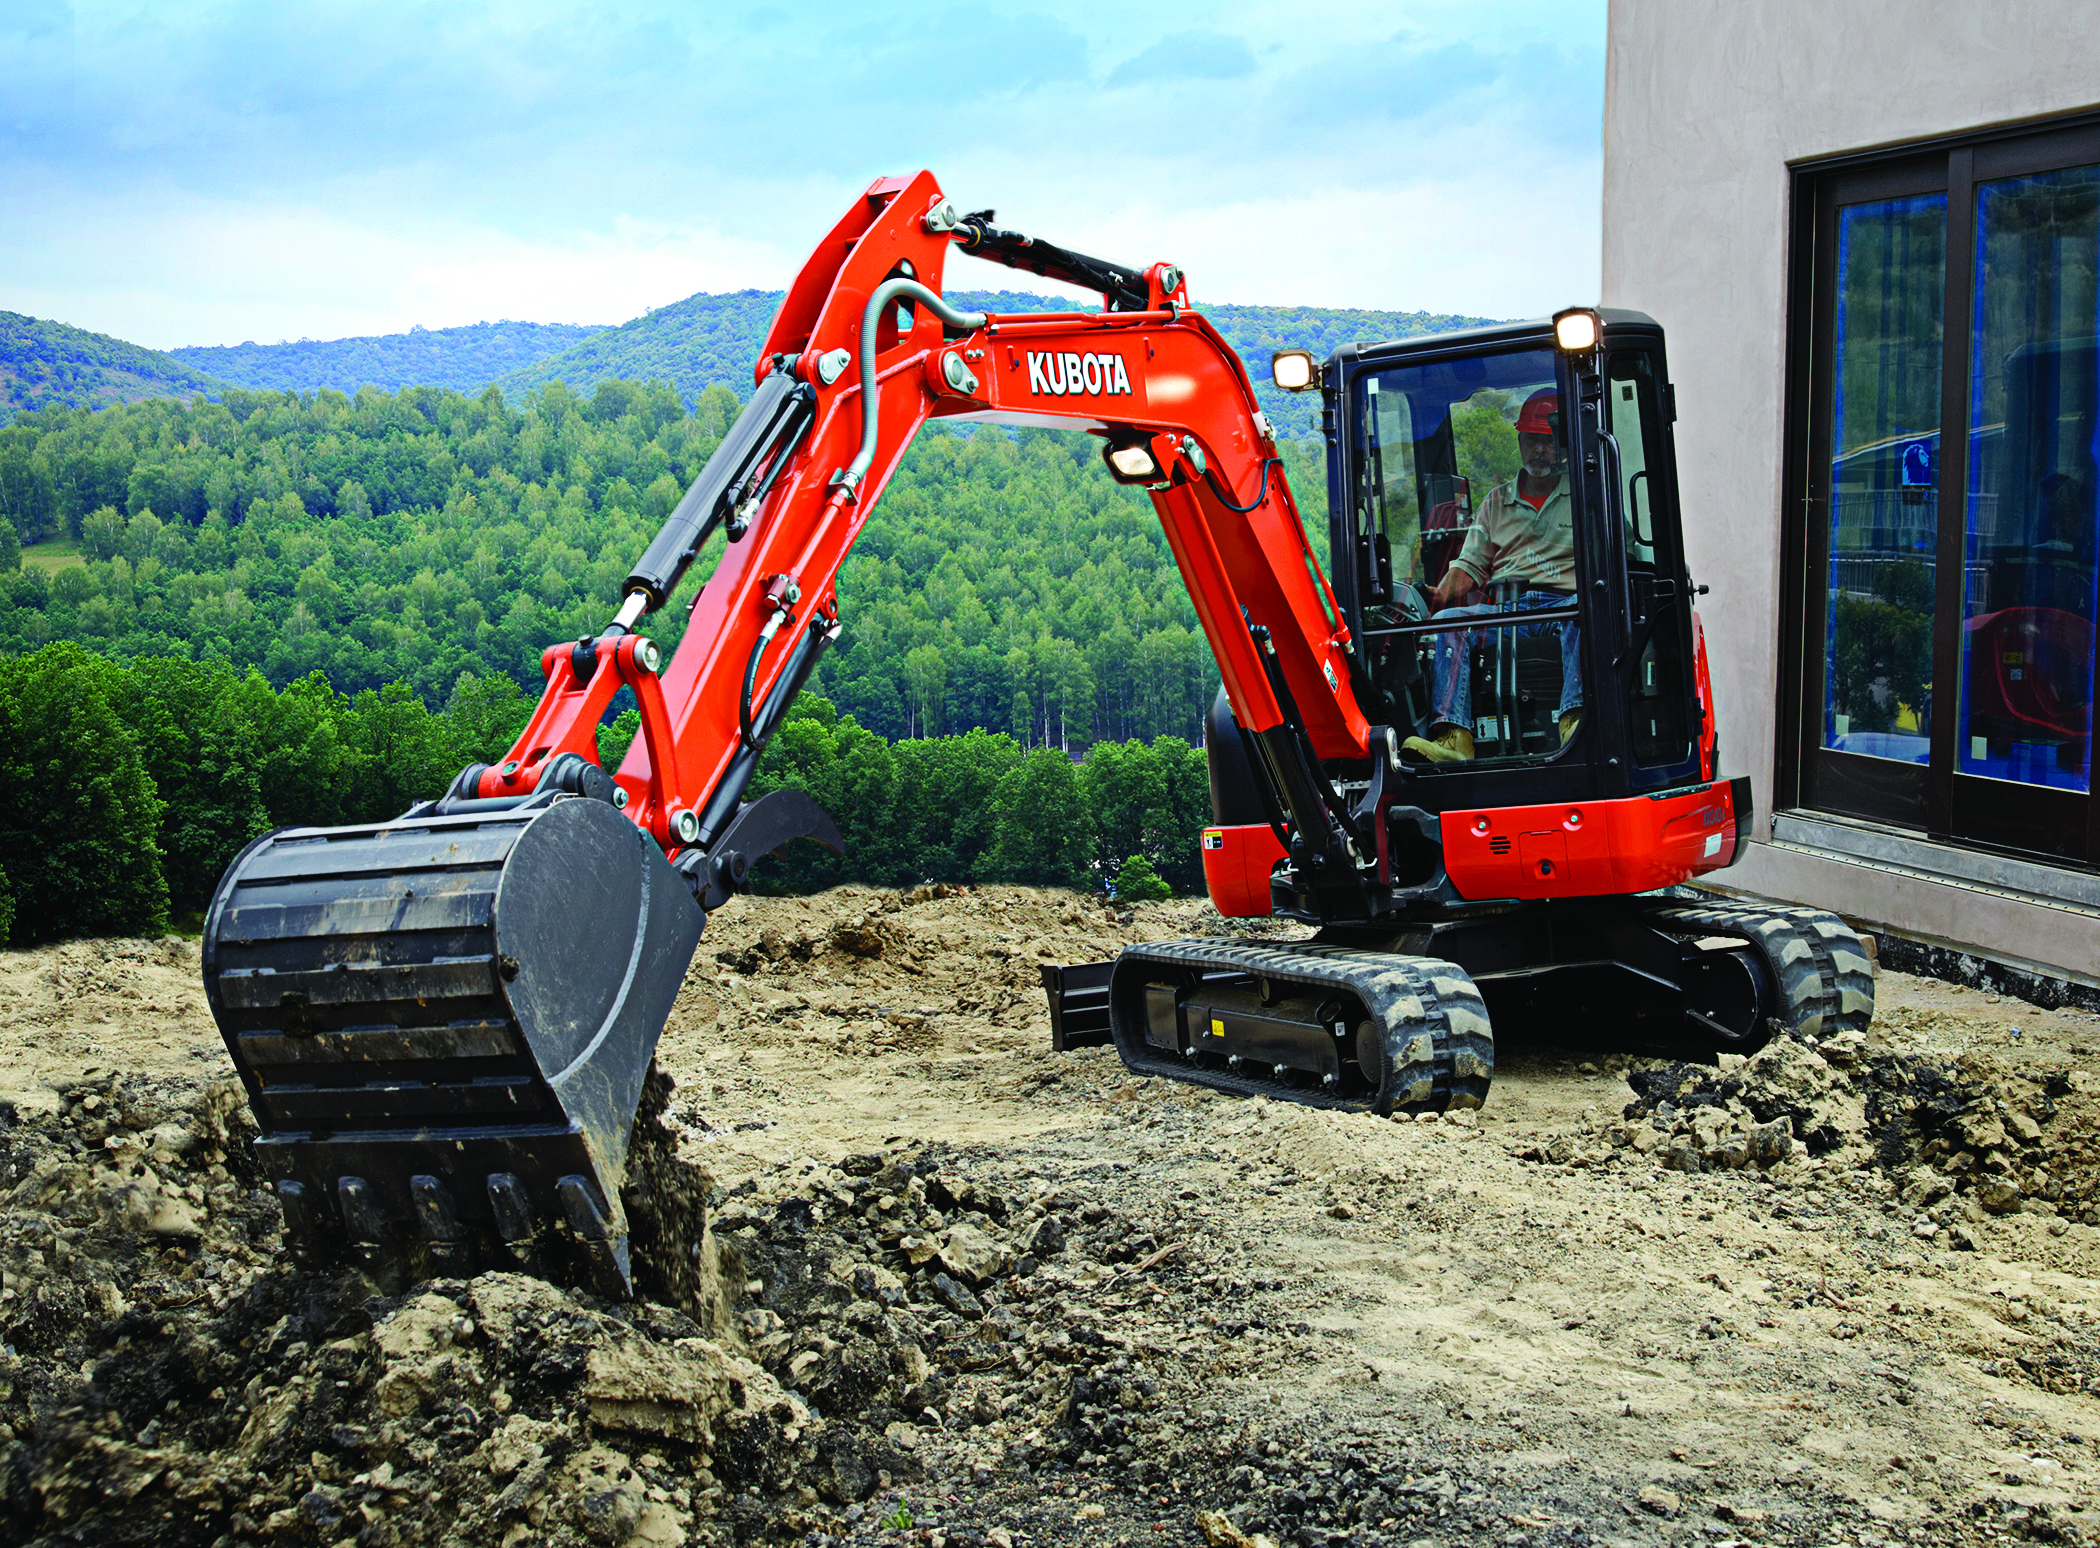 Construction - Kubota is proud to be the world's #1 selling compact excavator* (zero and conventional tail swing). With outstanding utility and exceptional, efficient operation, Kubota can help you tackle tougher jobs in even tighter spaces